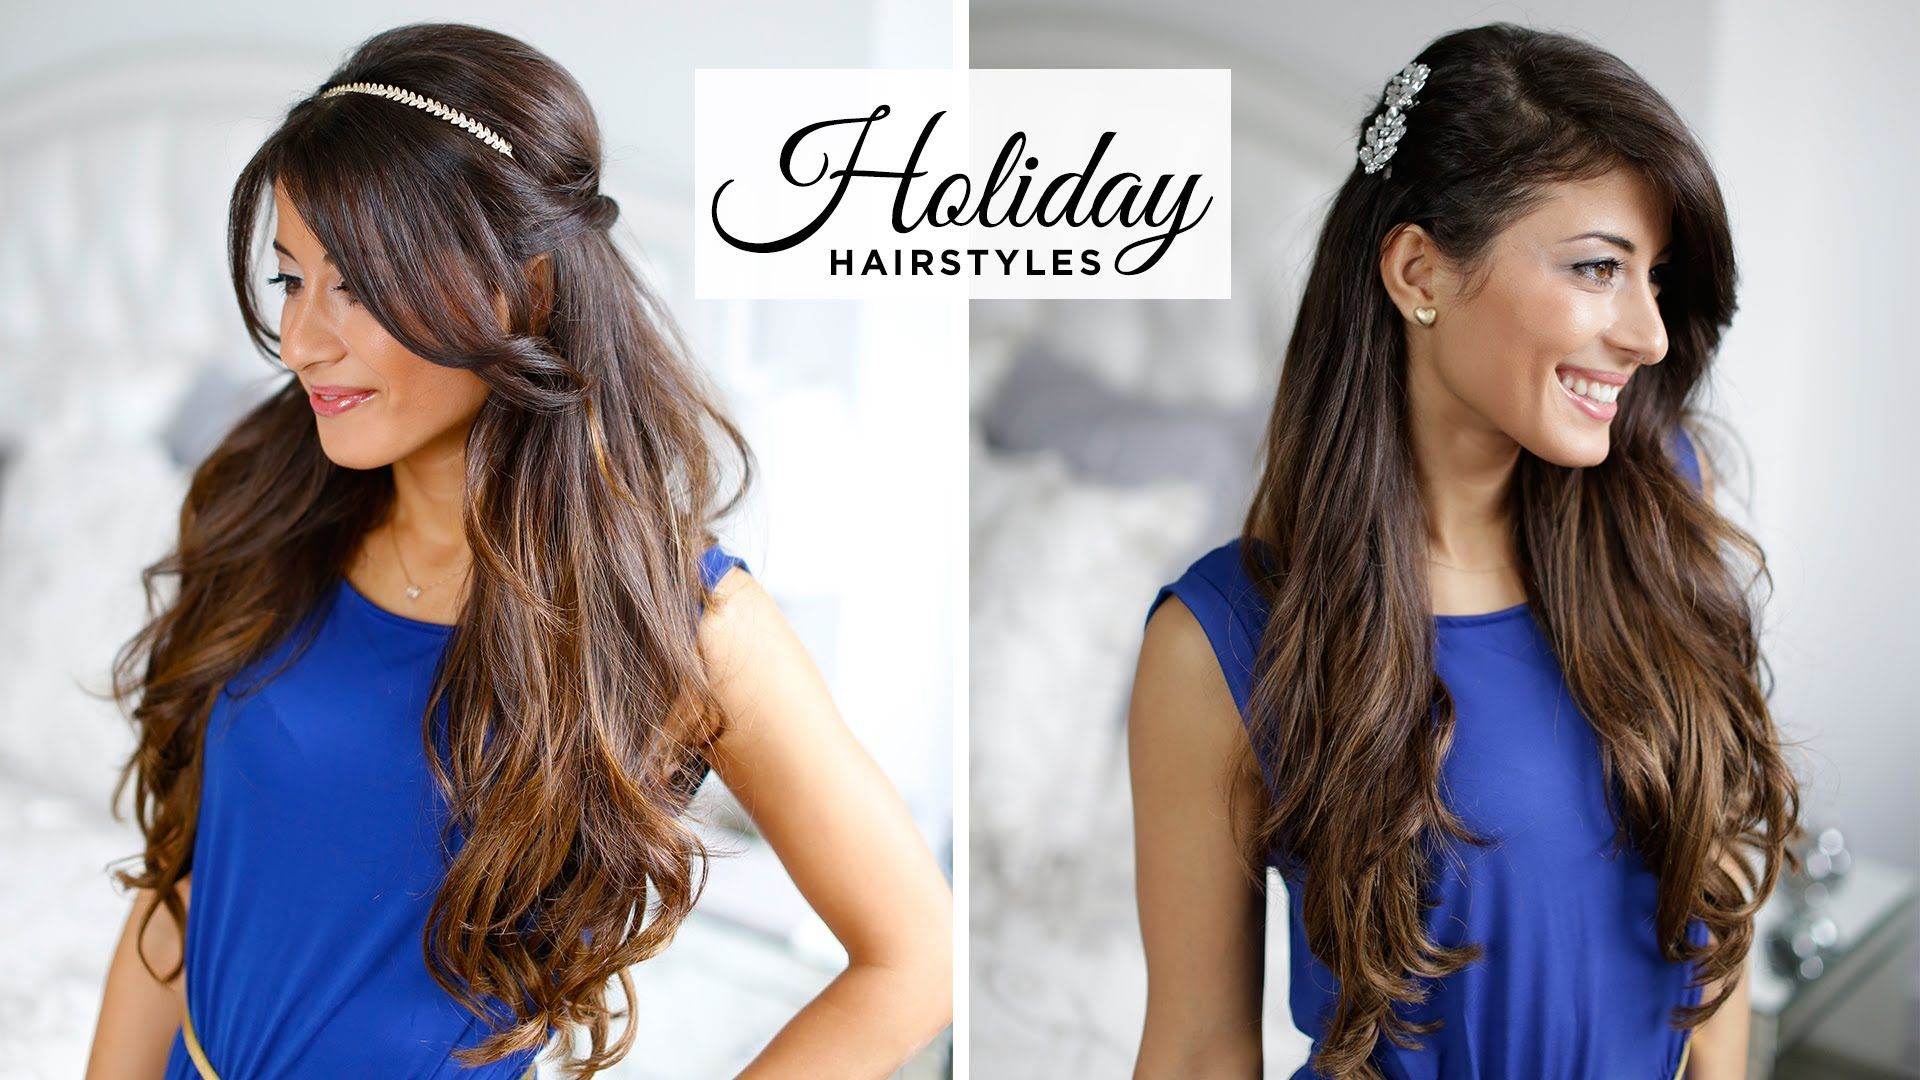 pin by abbey strand on hair | long hair styles, easy party